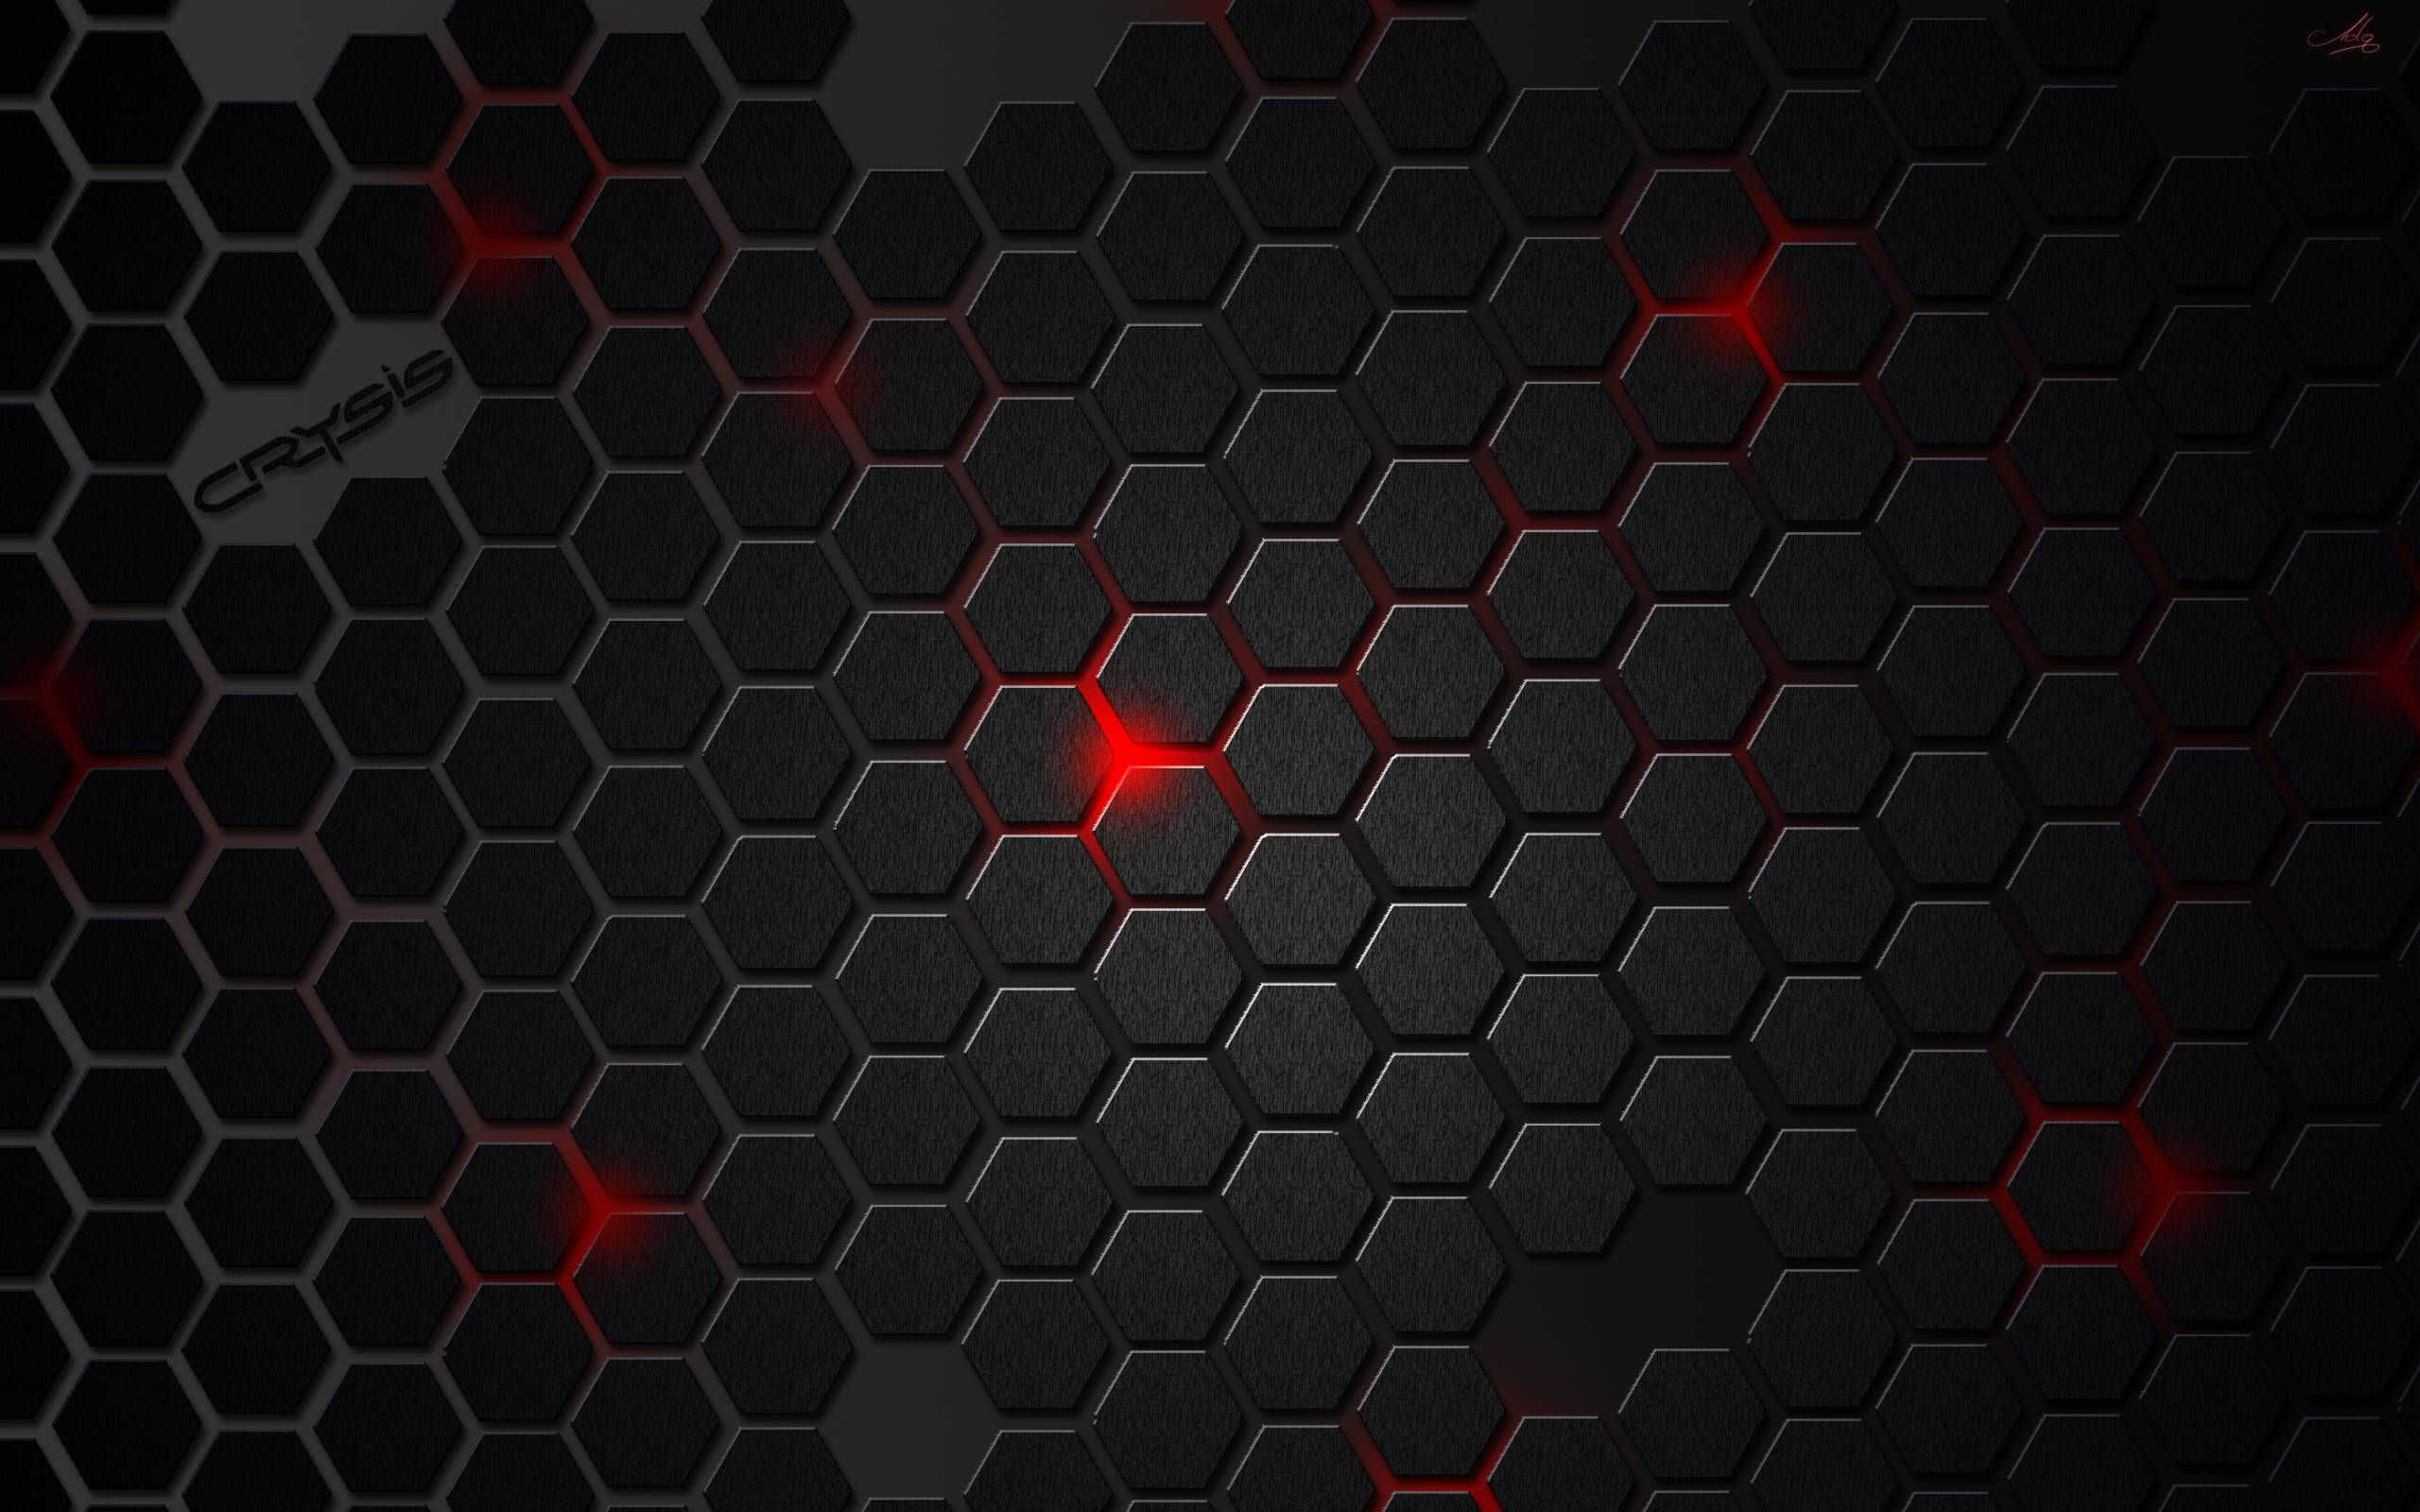 Black And Red Wallpapers Hd Wallpaper Cave Android Wallpaper Black Cool Black Wallpaper Black Textured Wallpaper